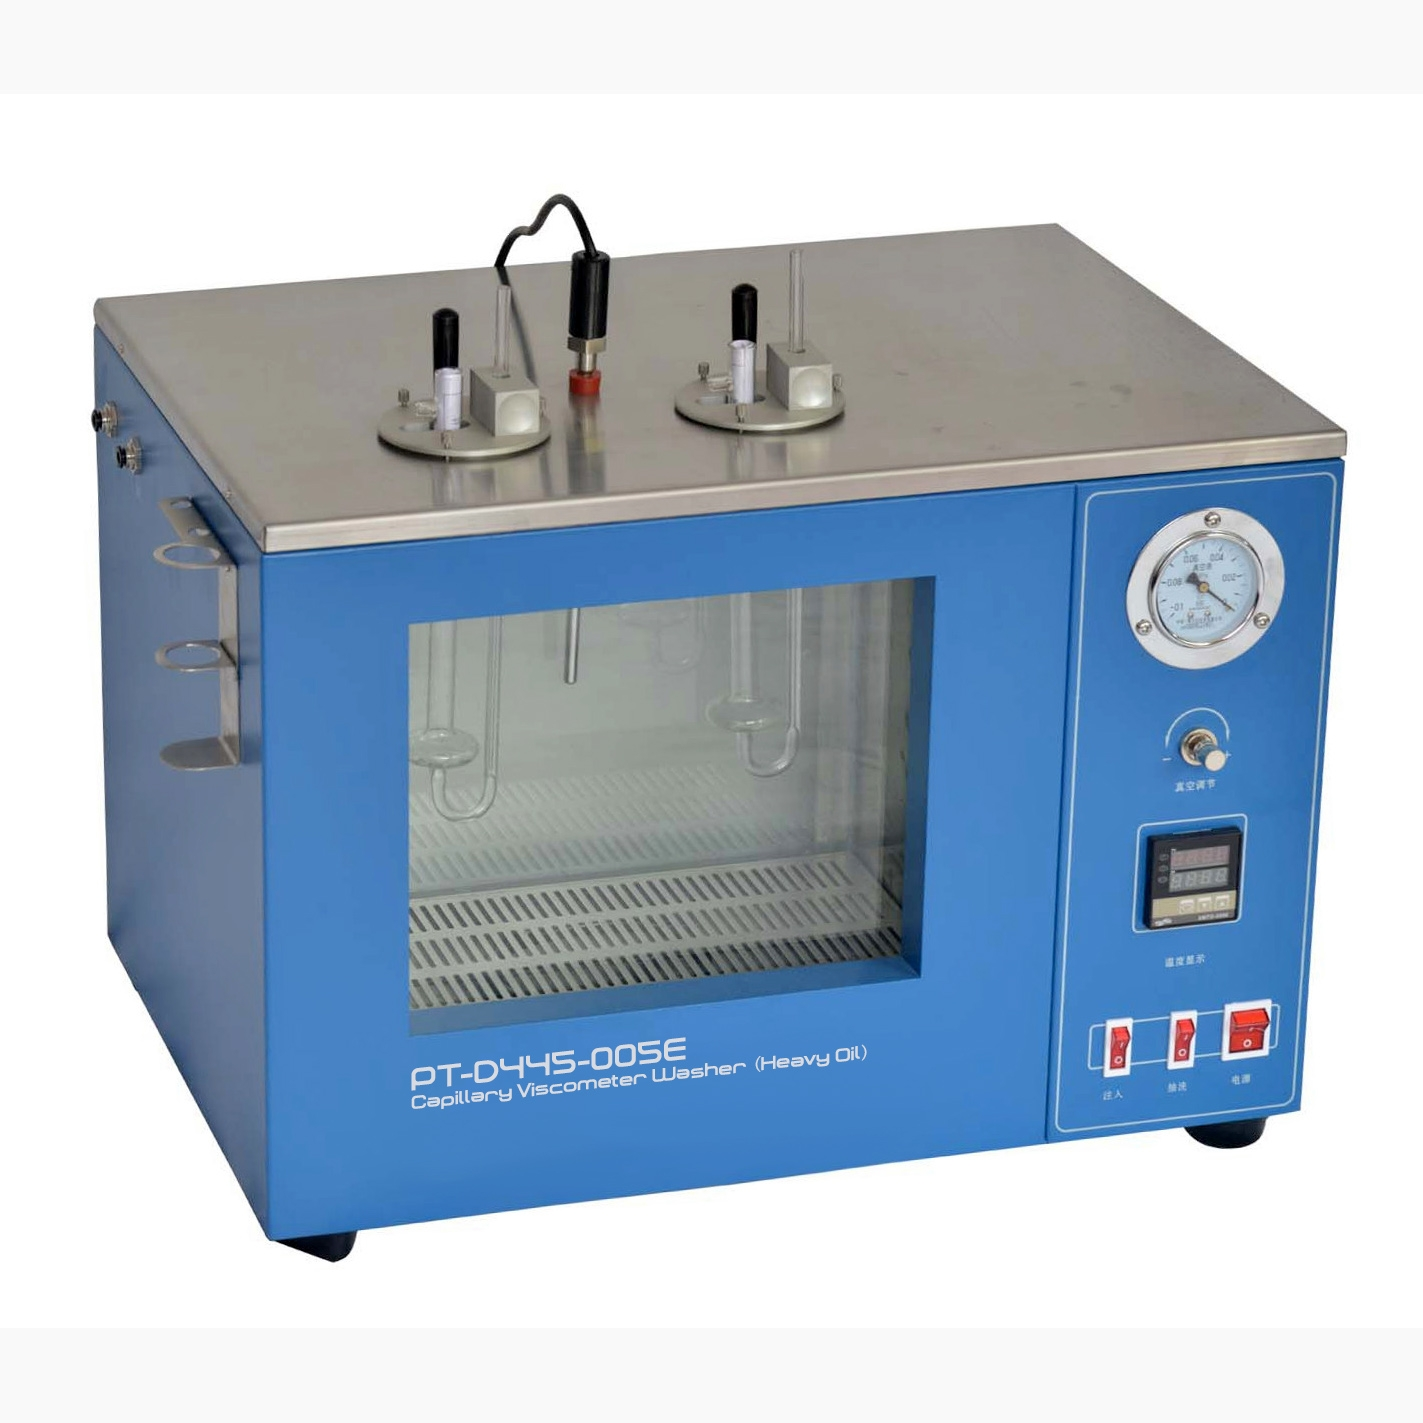 Capillary viscometer automatic cleaning machine (Washer)